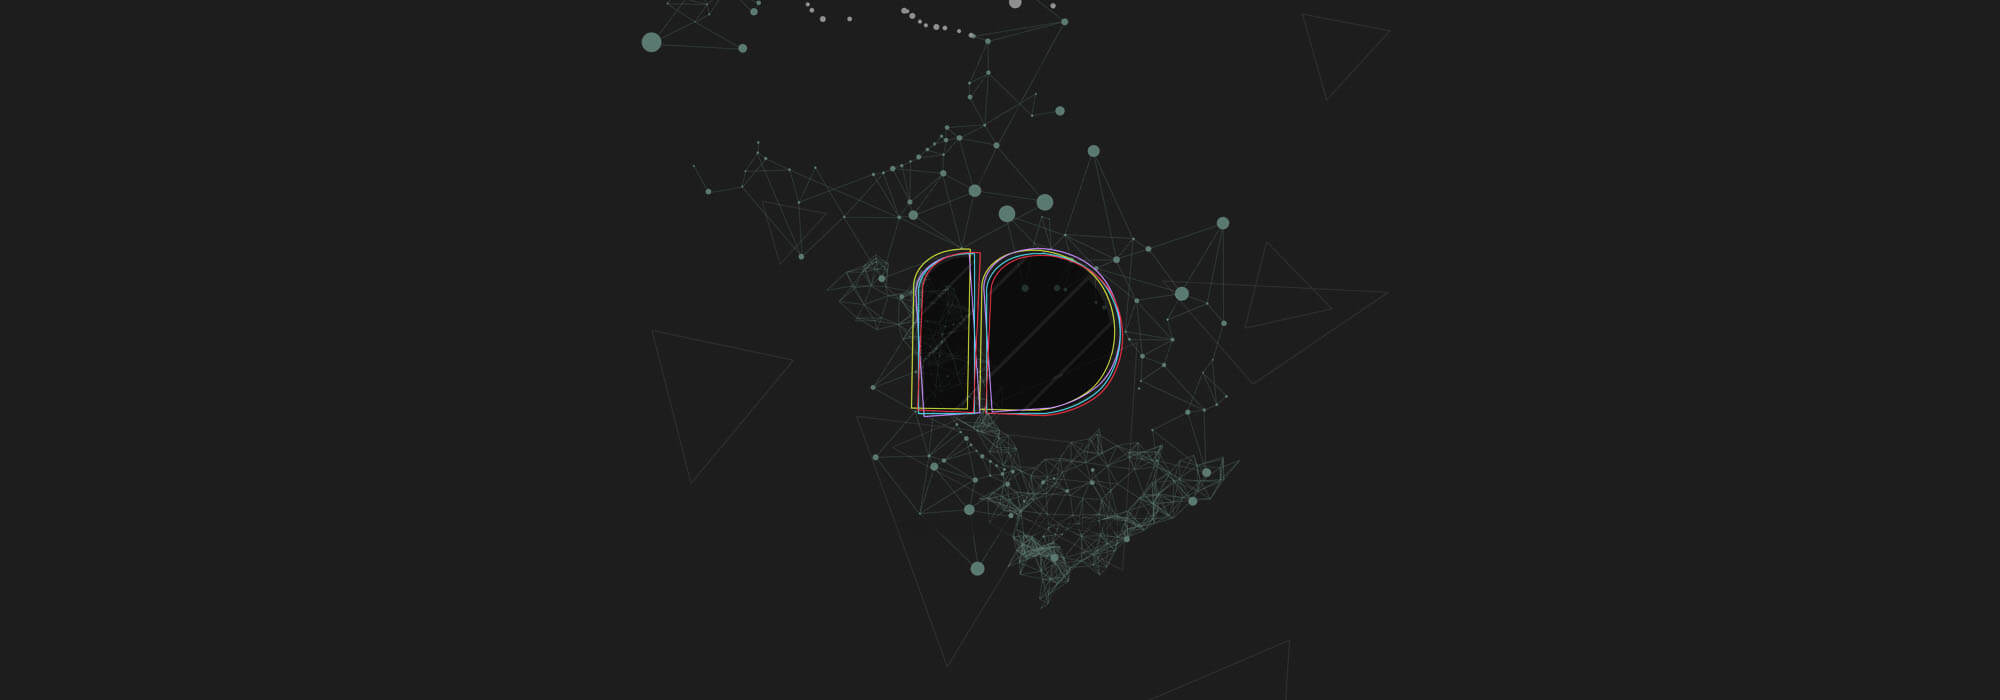 Internet Dreams Studio Ltd. Privacy Policy